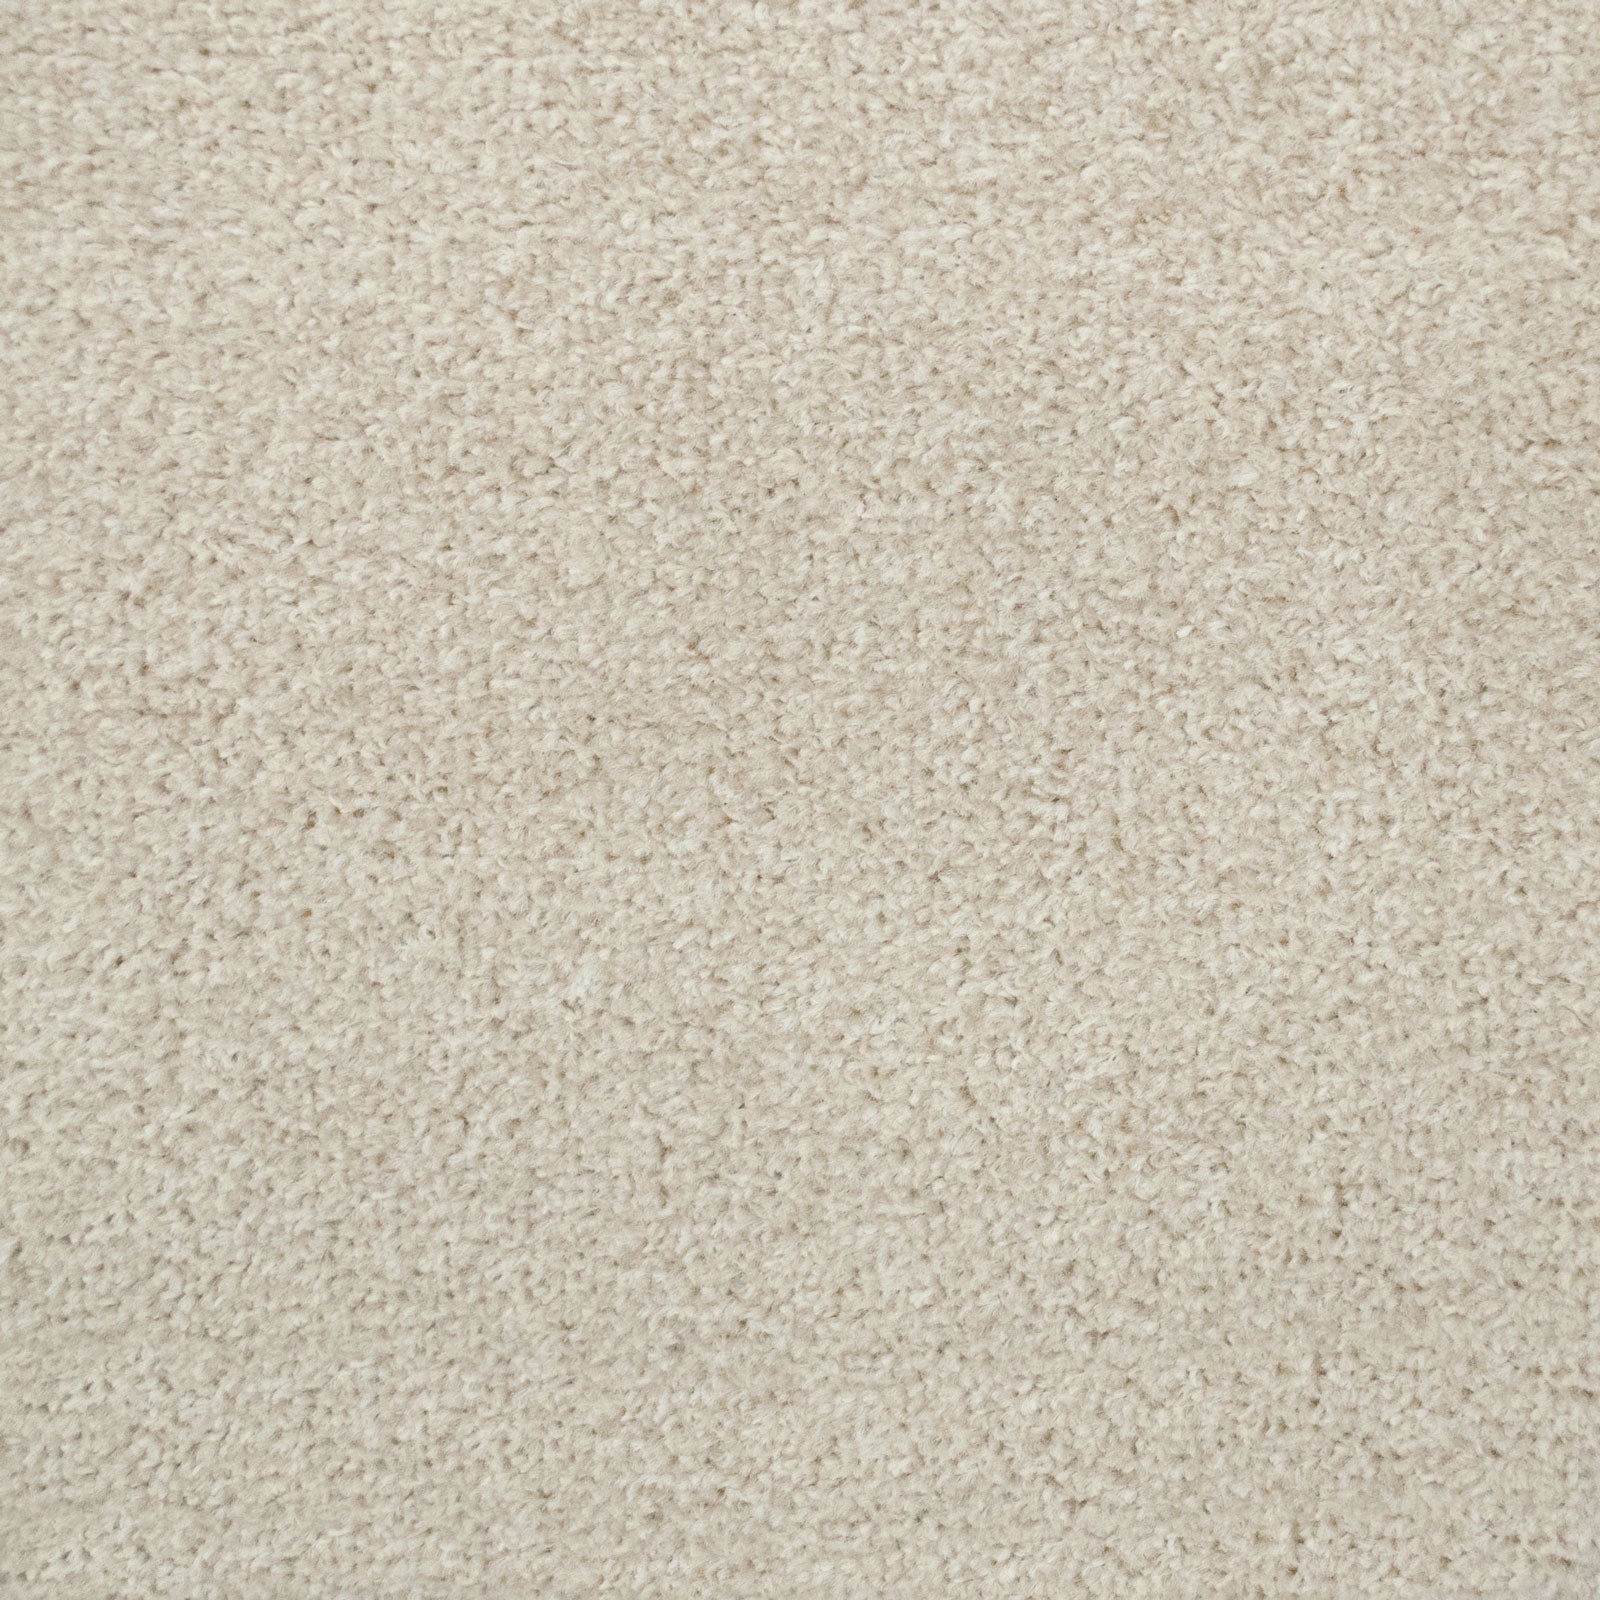 Soft Cream Liberty Heathers Twist Carpet - Far